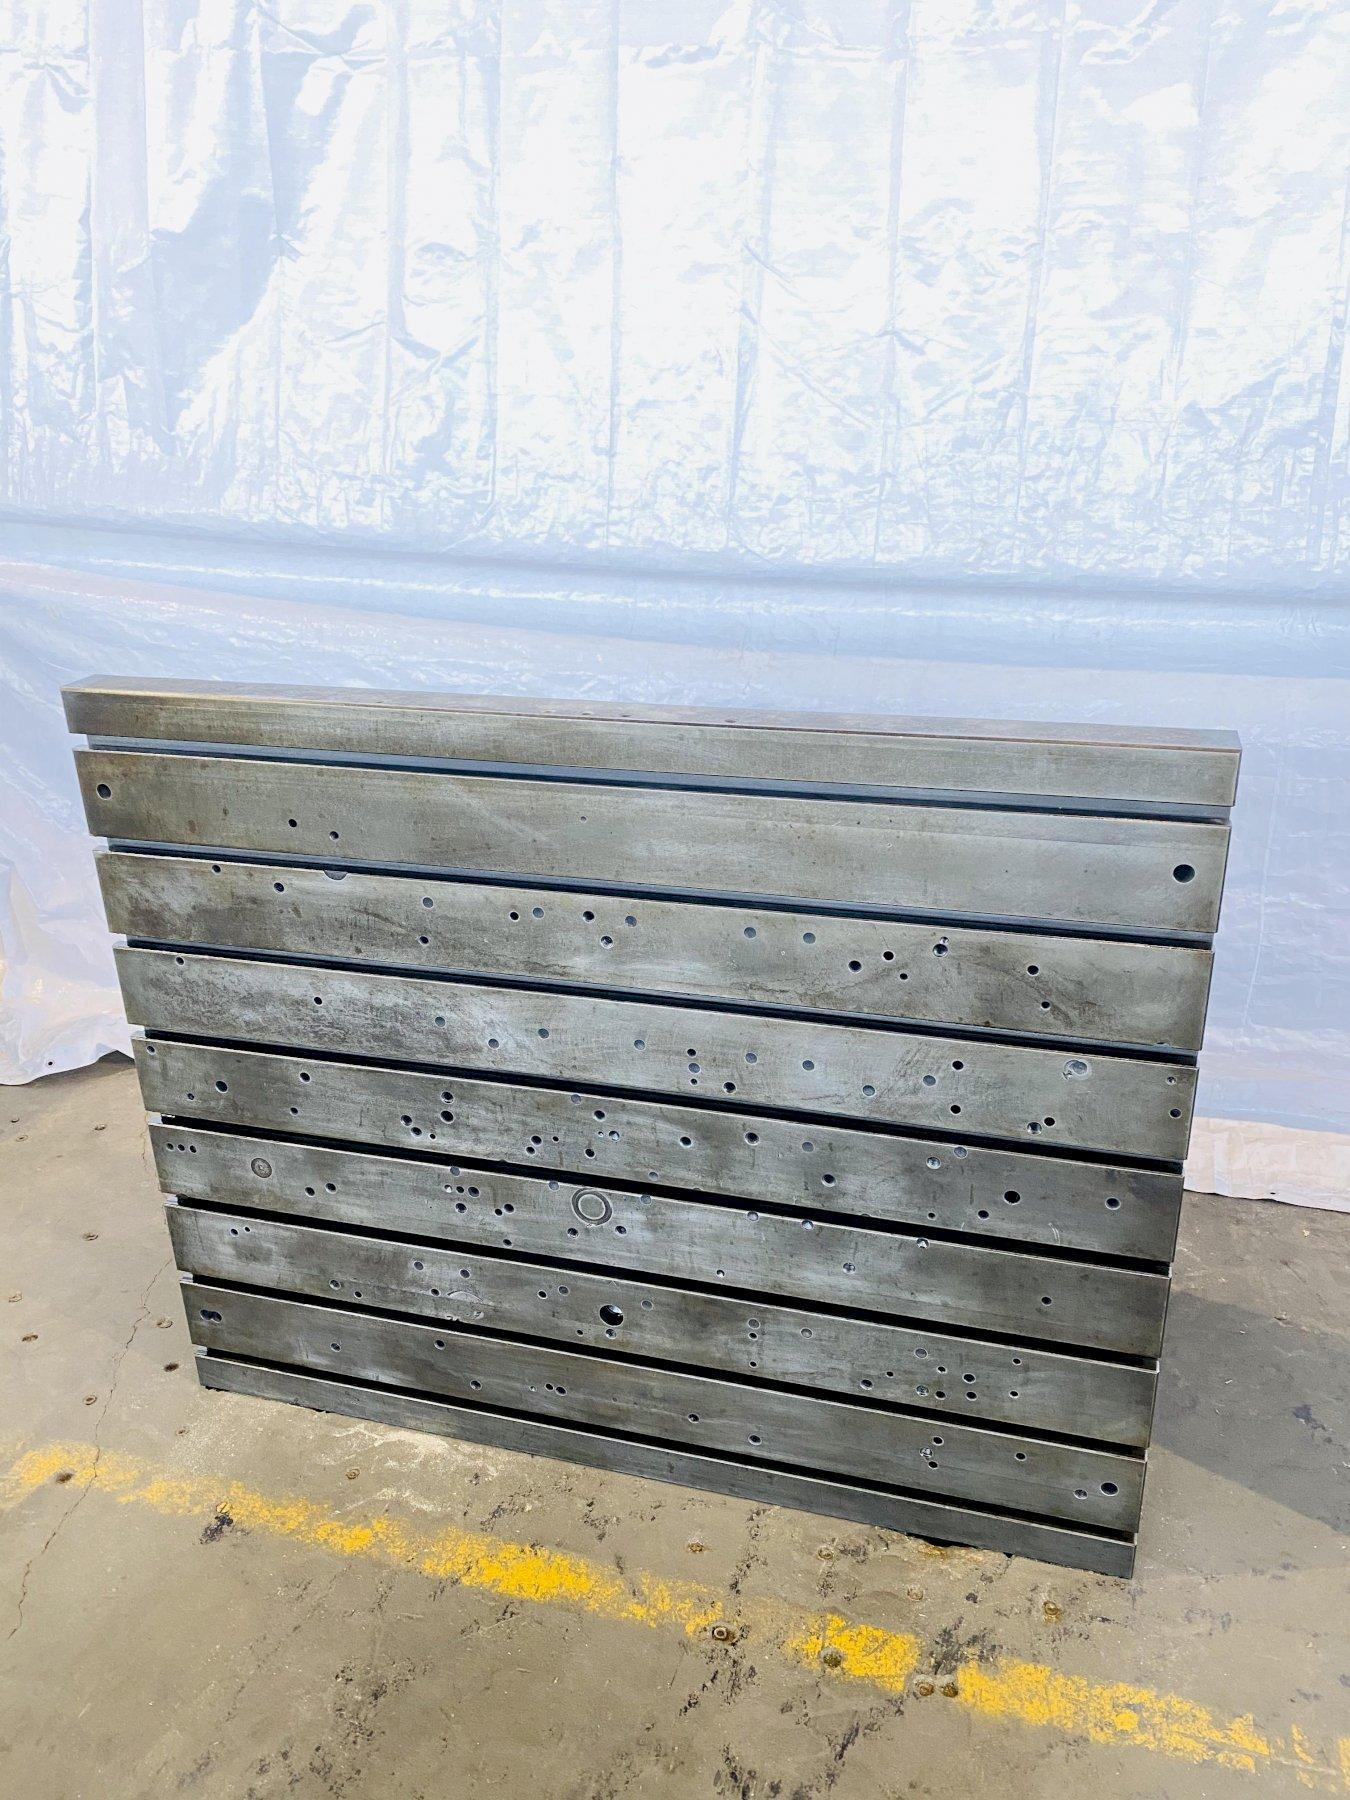 "48"" T x 60"" L x 26"" D T SLOTTED ANGLE PLATE. STOCK # 0506920"